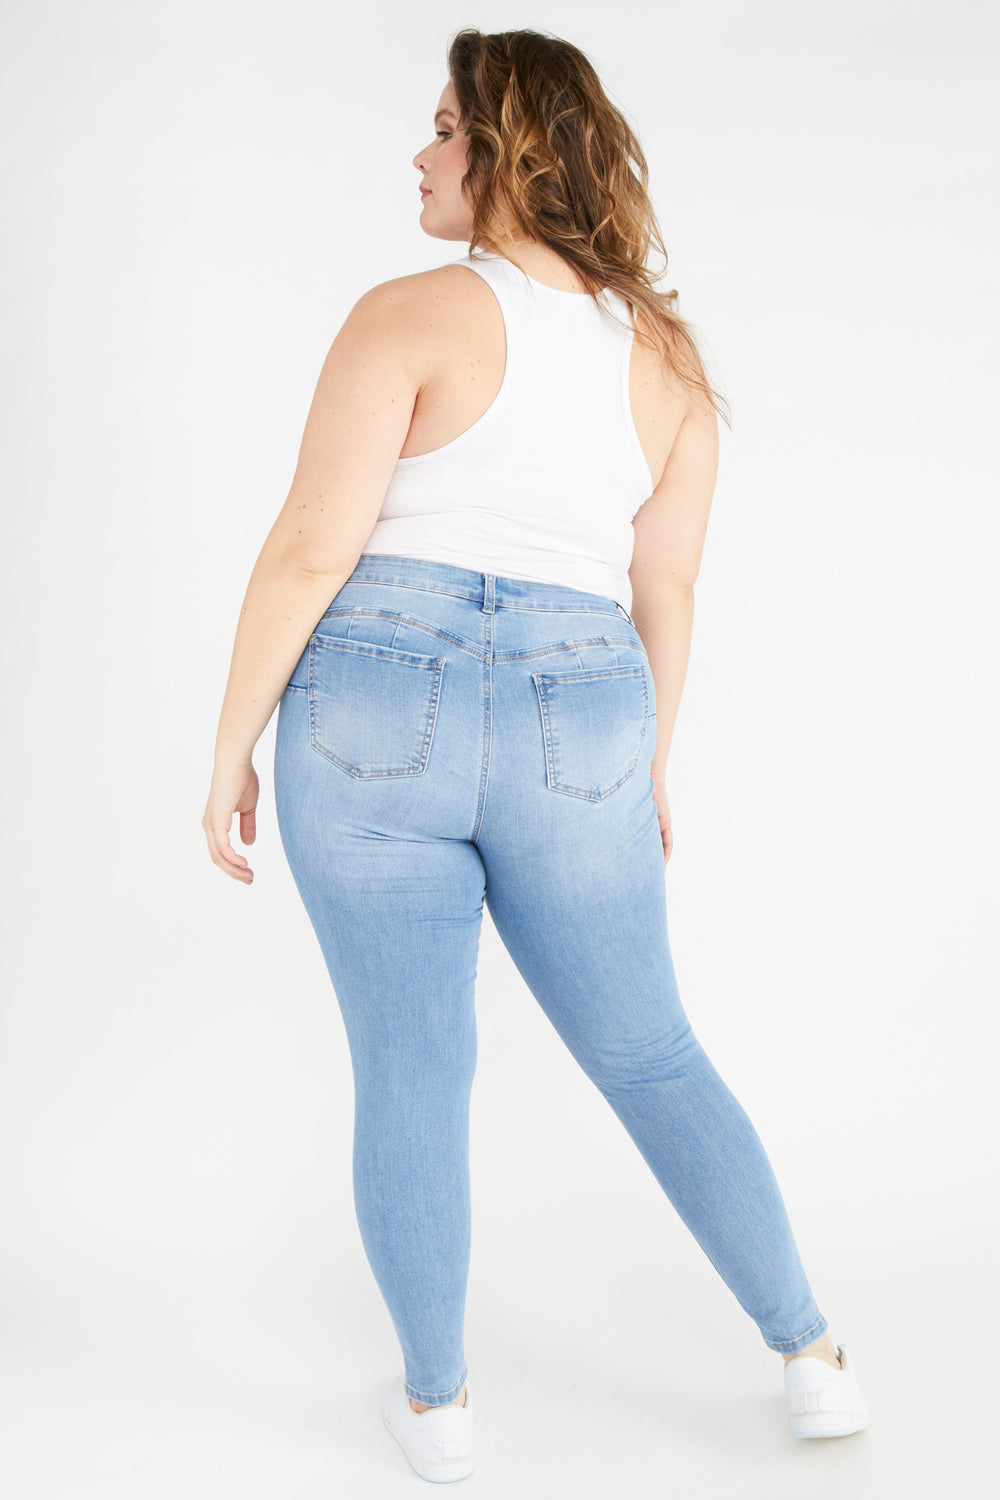 Eco-Friendly Butt, I Love You High-Rise Distressed Push-Up Skinny Jean Sky Blue